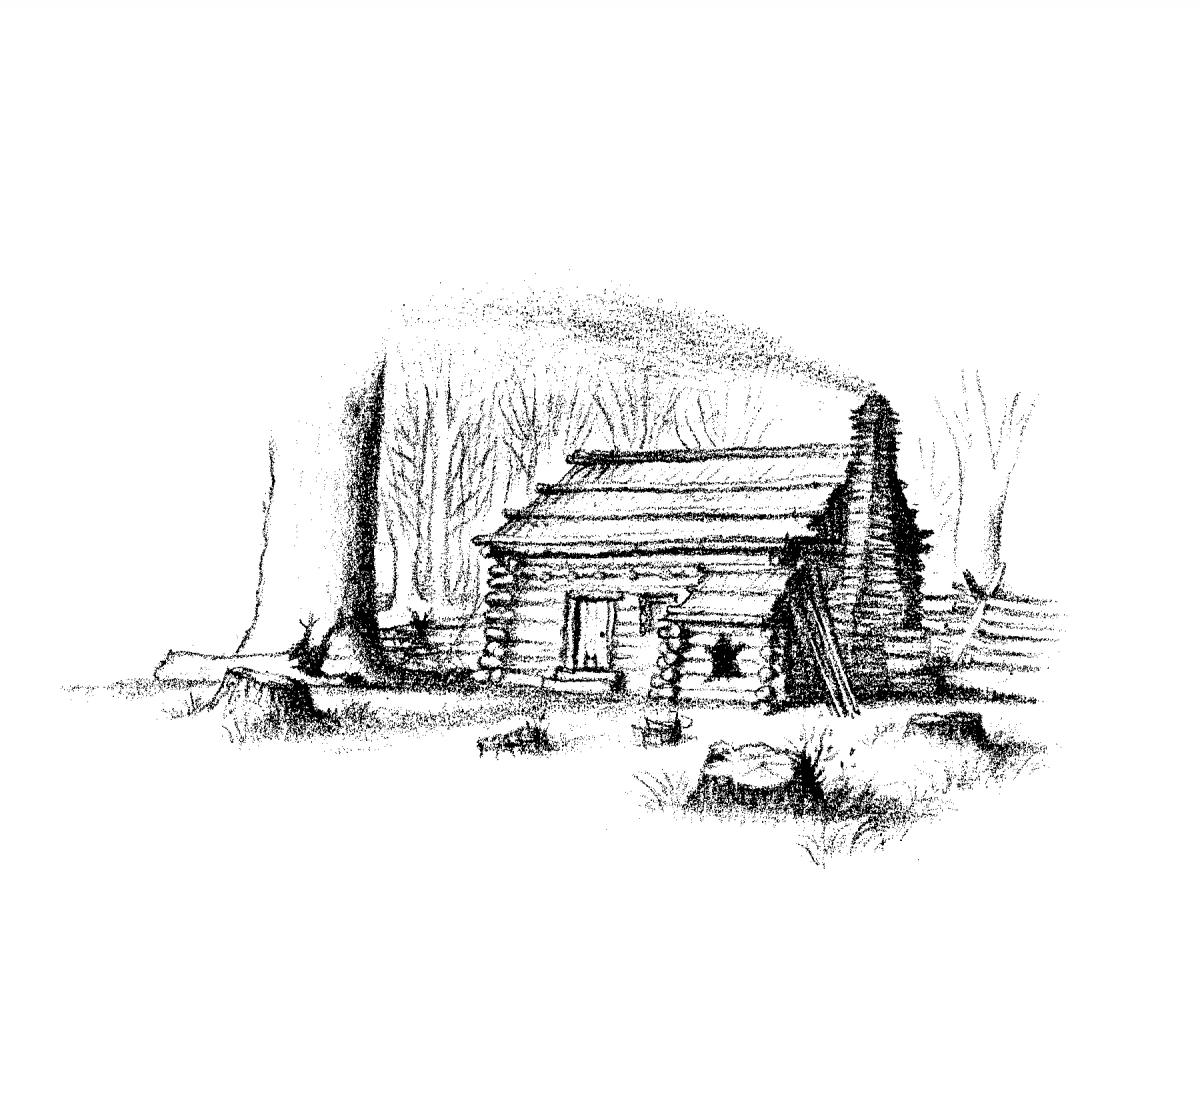 The Ingalls's wood cabin, with smoke coming out of the chimney